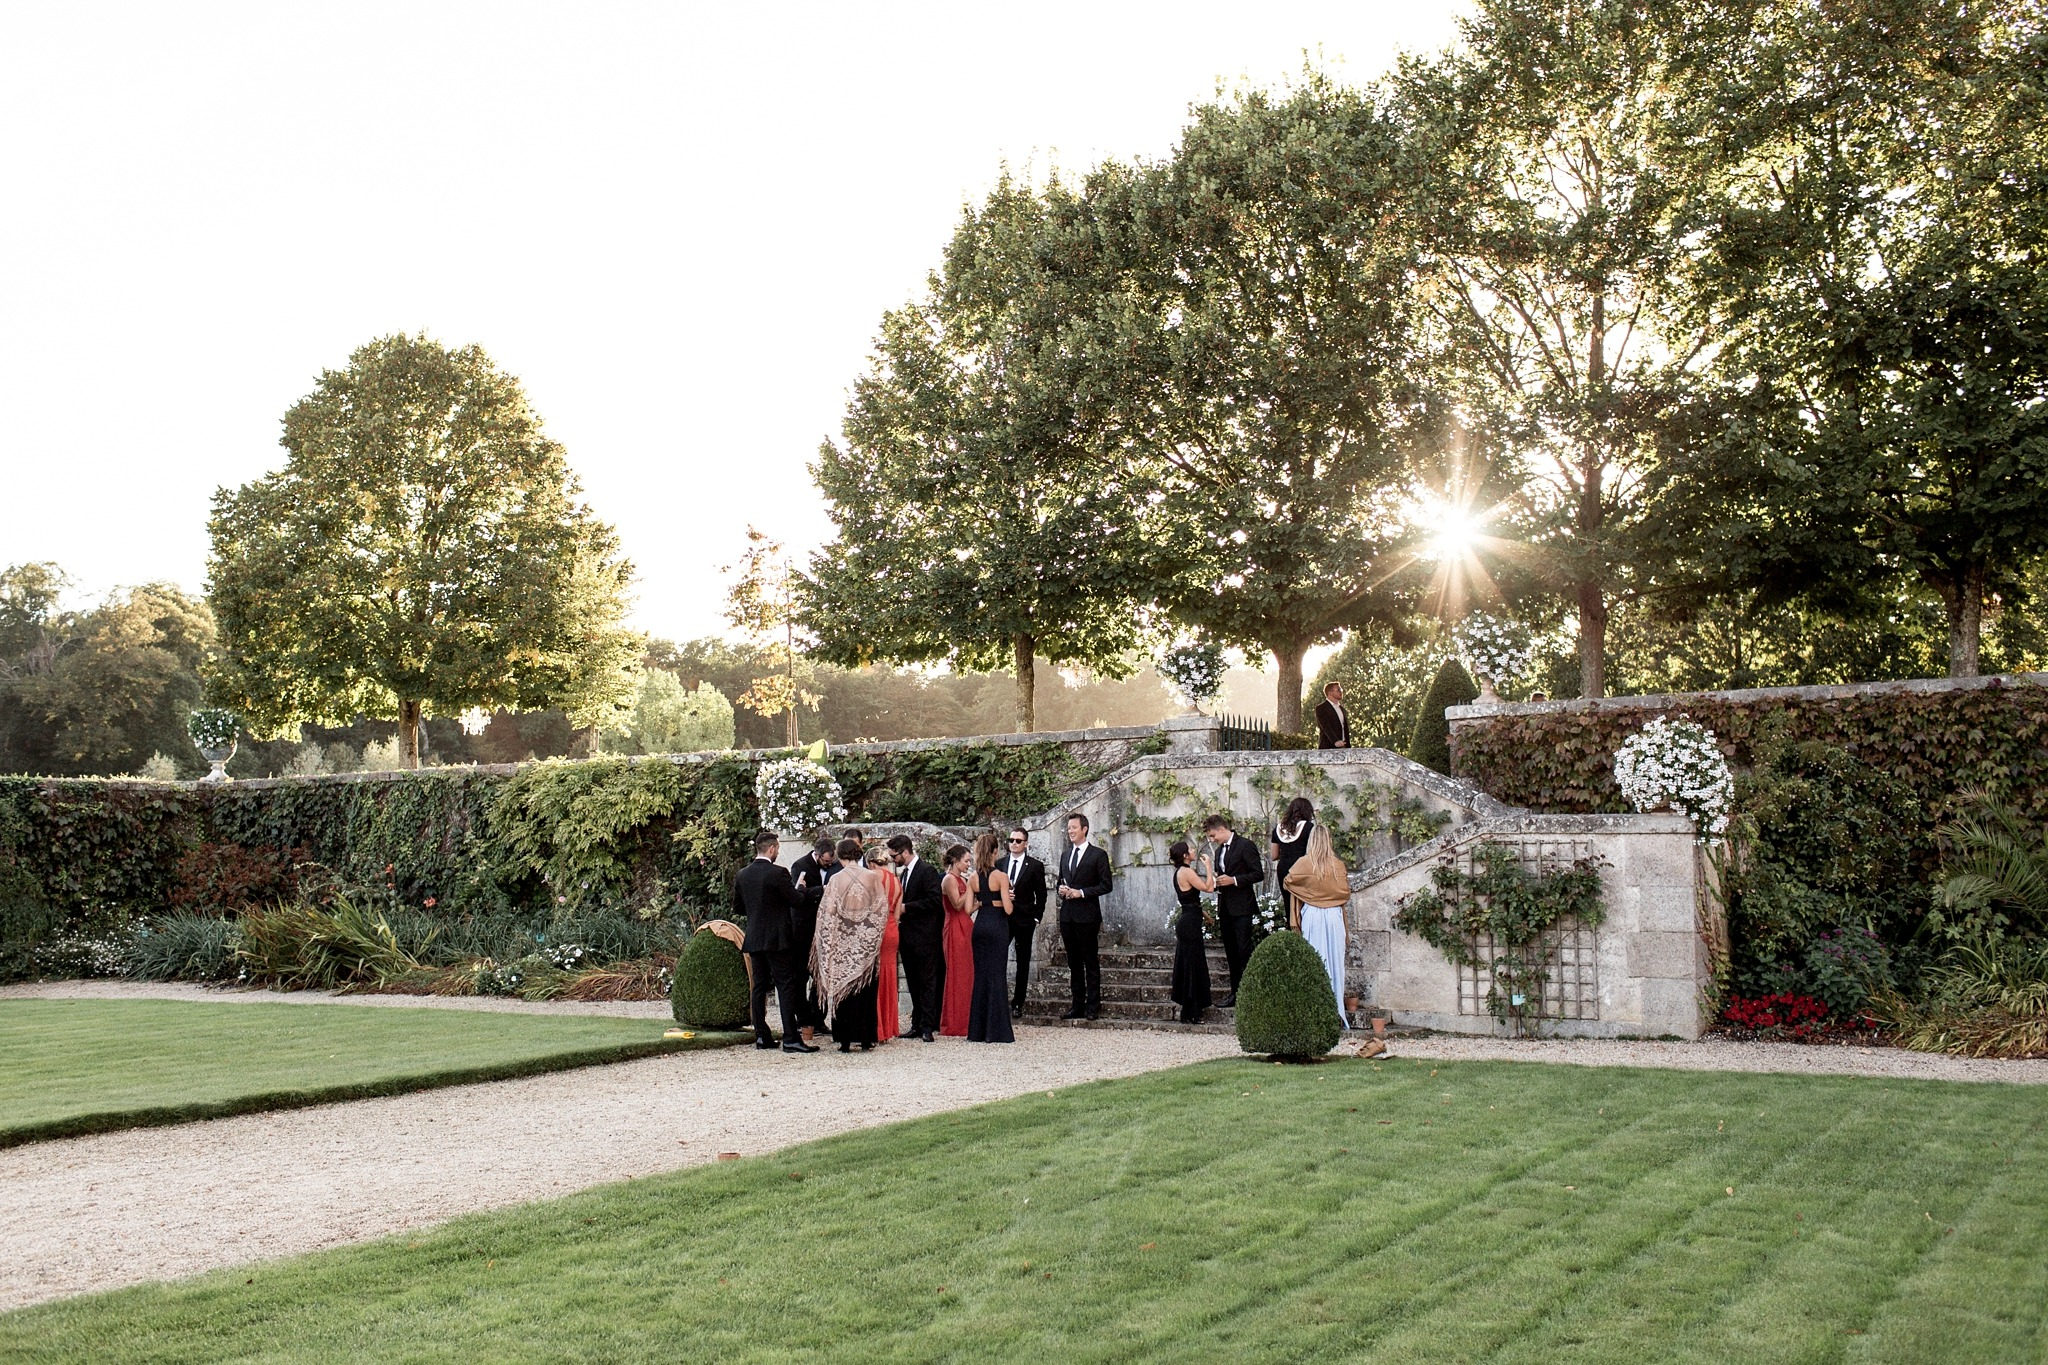 chateau-wedding-france-chanel-eric-as-seen-on-vogue-with-sarah-falugo-photographer_0131